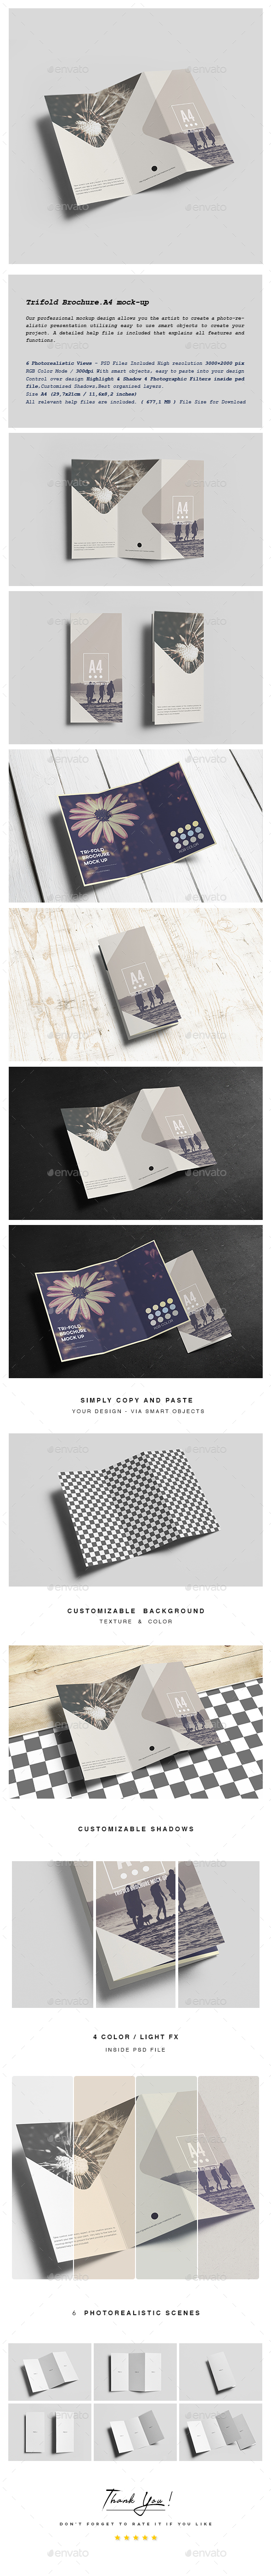 Trifold Brochure A4 Mock-up - Product Mock-Ups Graphics